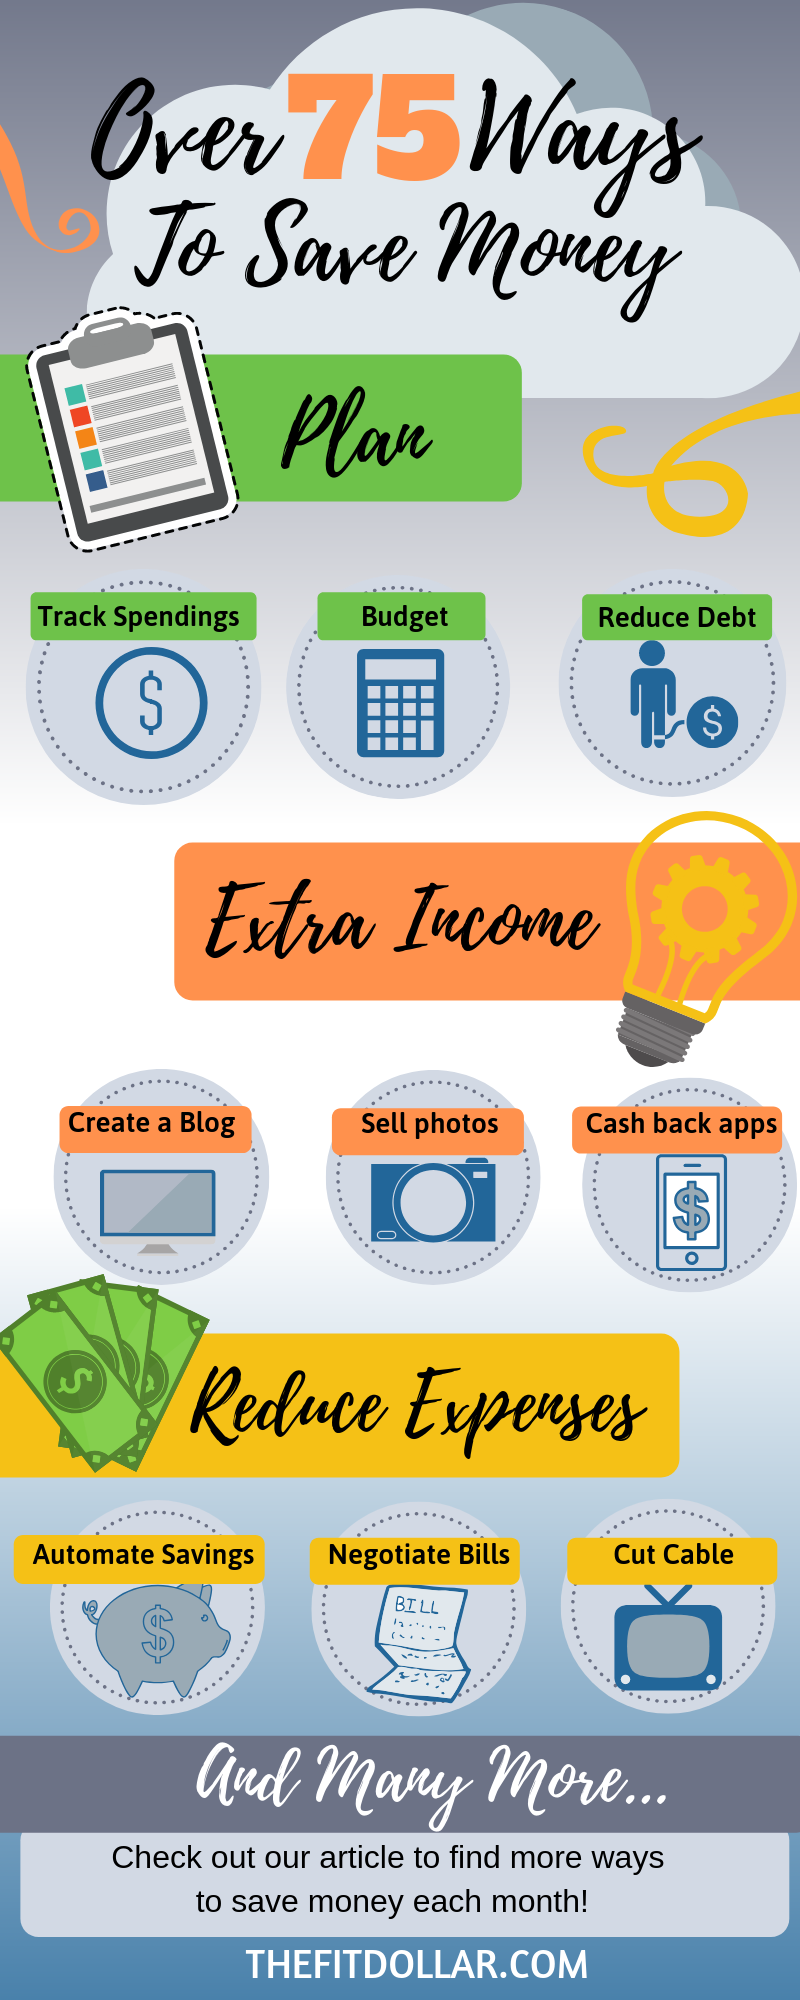 Save Money Ideas And Frugal Living Ideas That Can Help You Get Out Of Debt And Save Money Start A Budget And Get Saving Money Money Management Single Mom Help